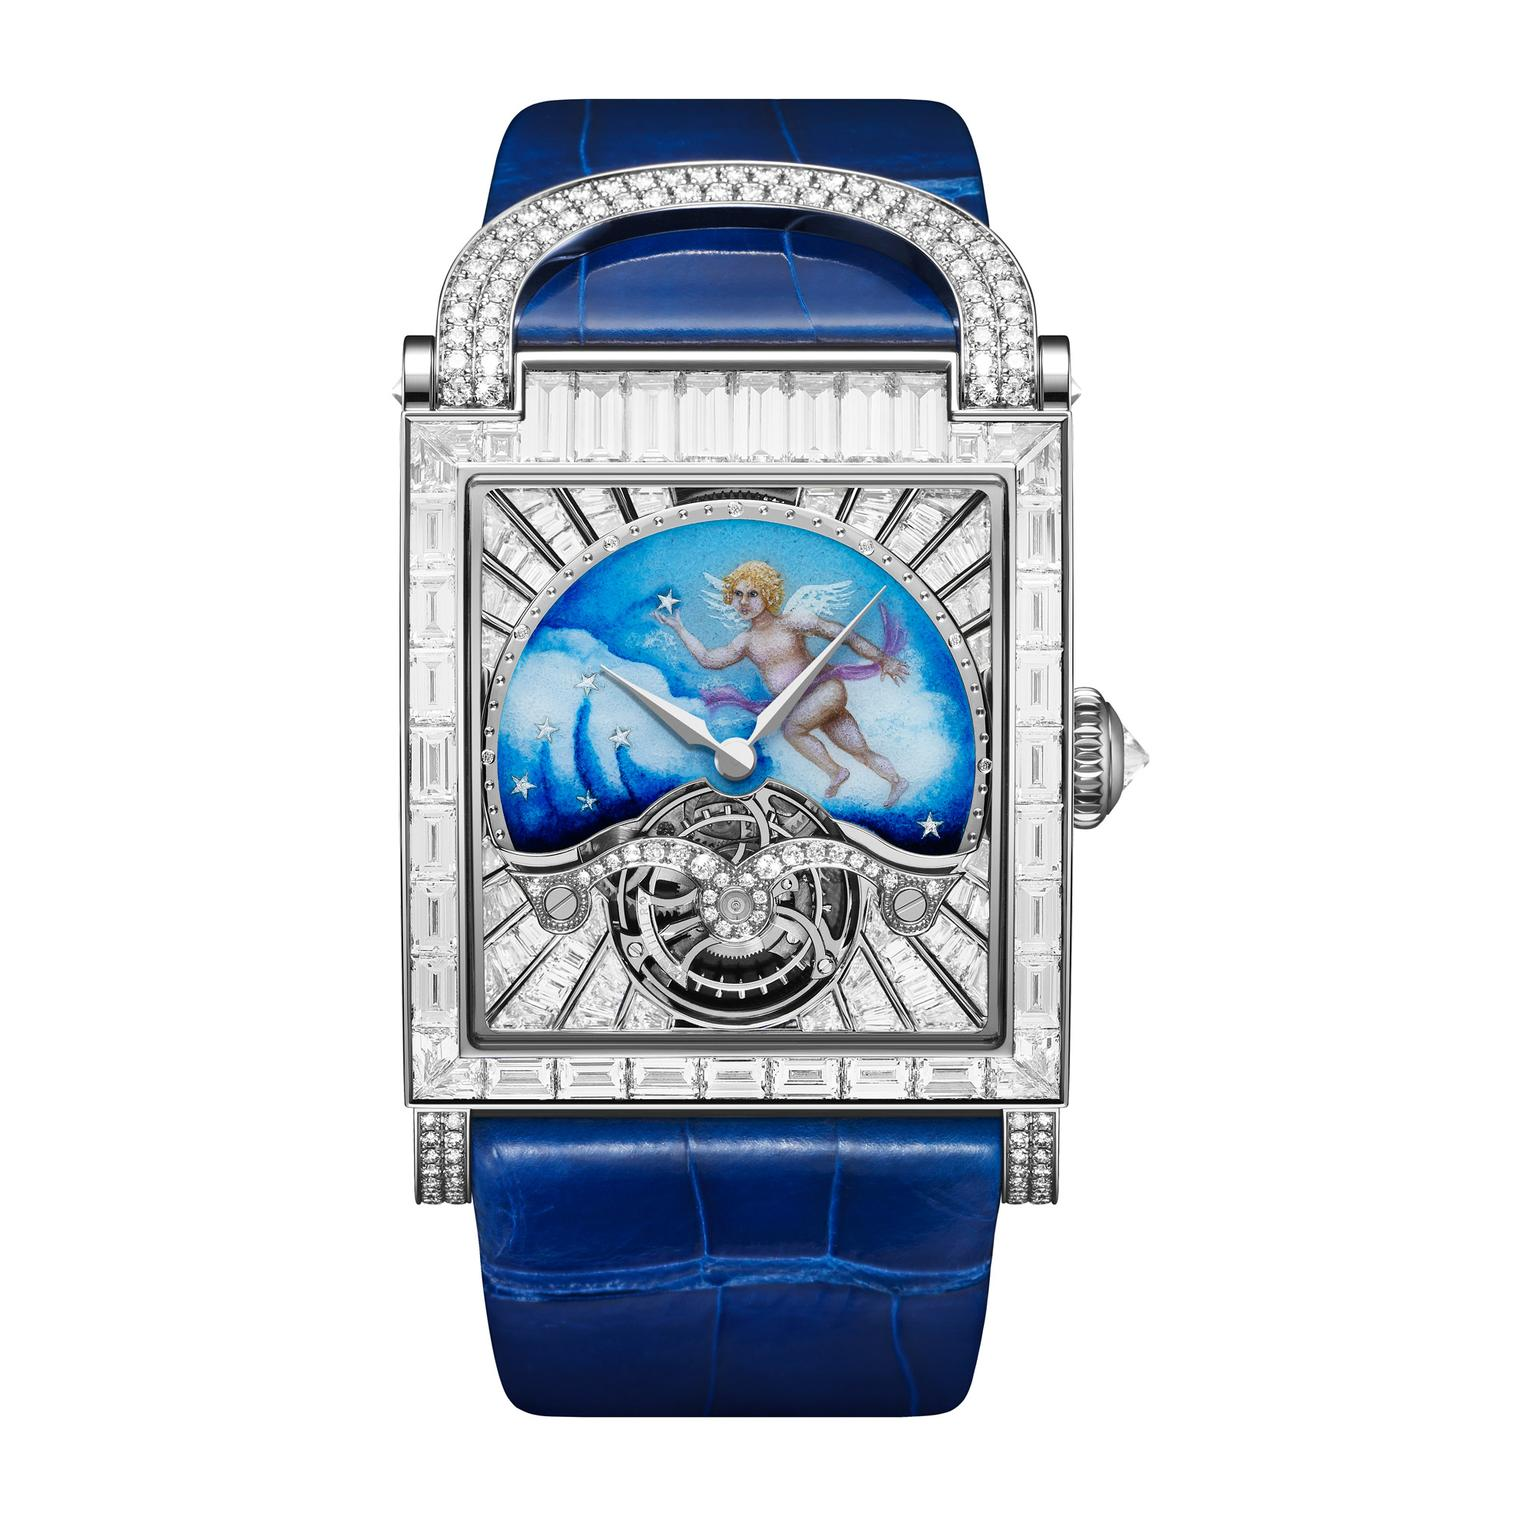 DeLaneau Guardian Angel watch